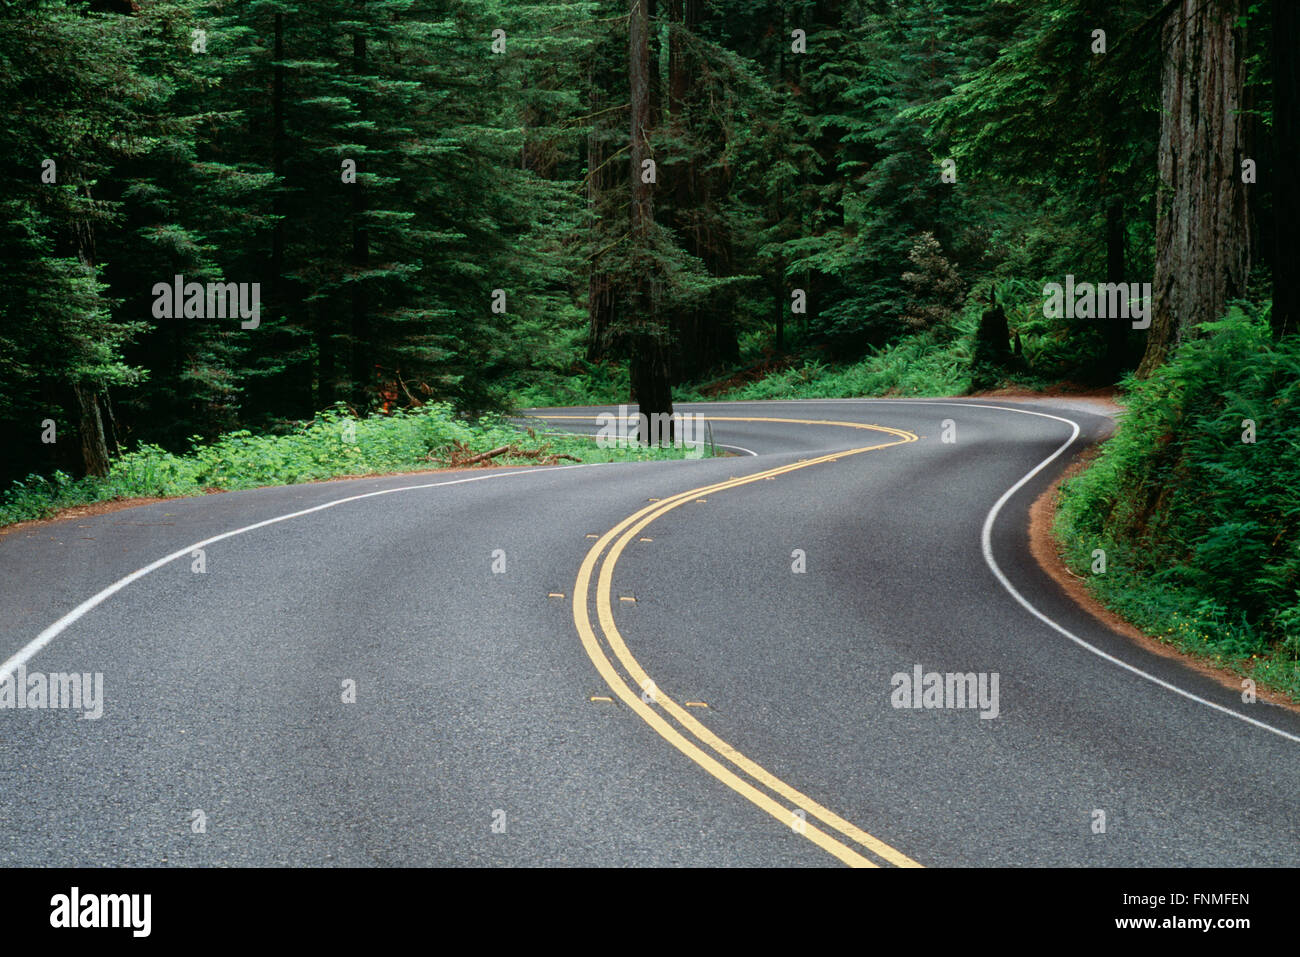 Winding Road through a Forest, Jedediah Smith Redwoods State Park, California, USA - Stock Image